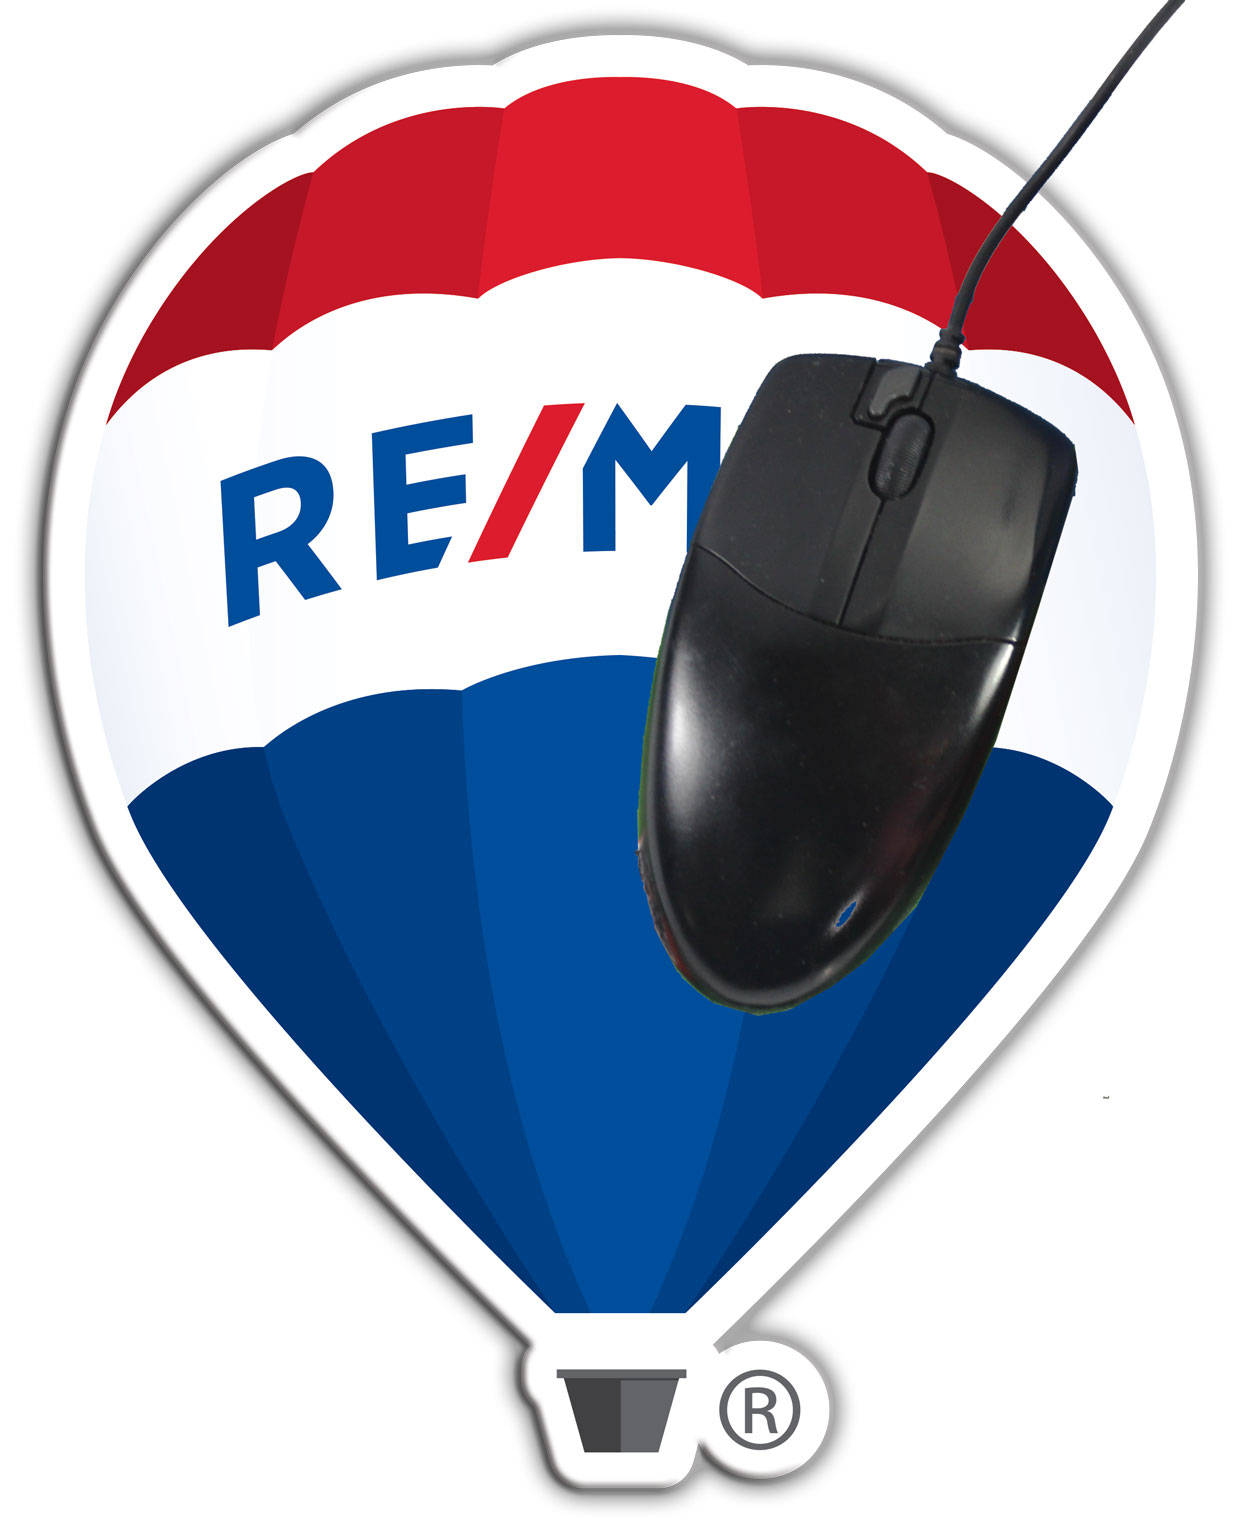 RE/MAX Balloon 7